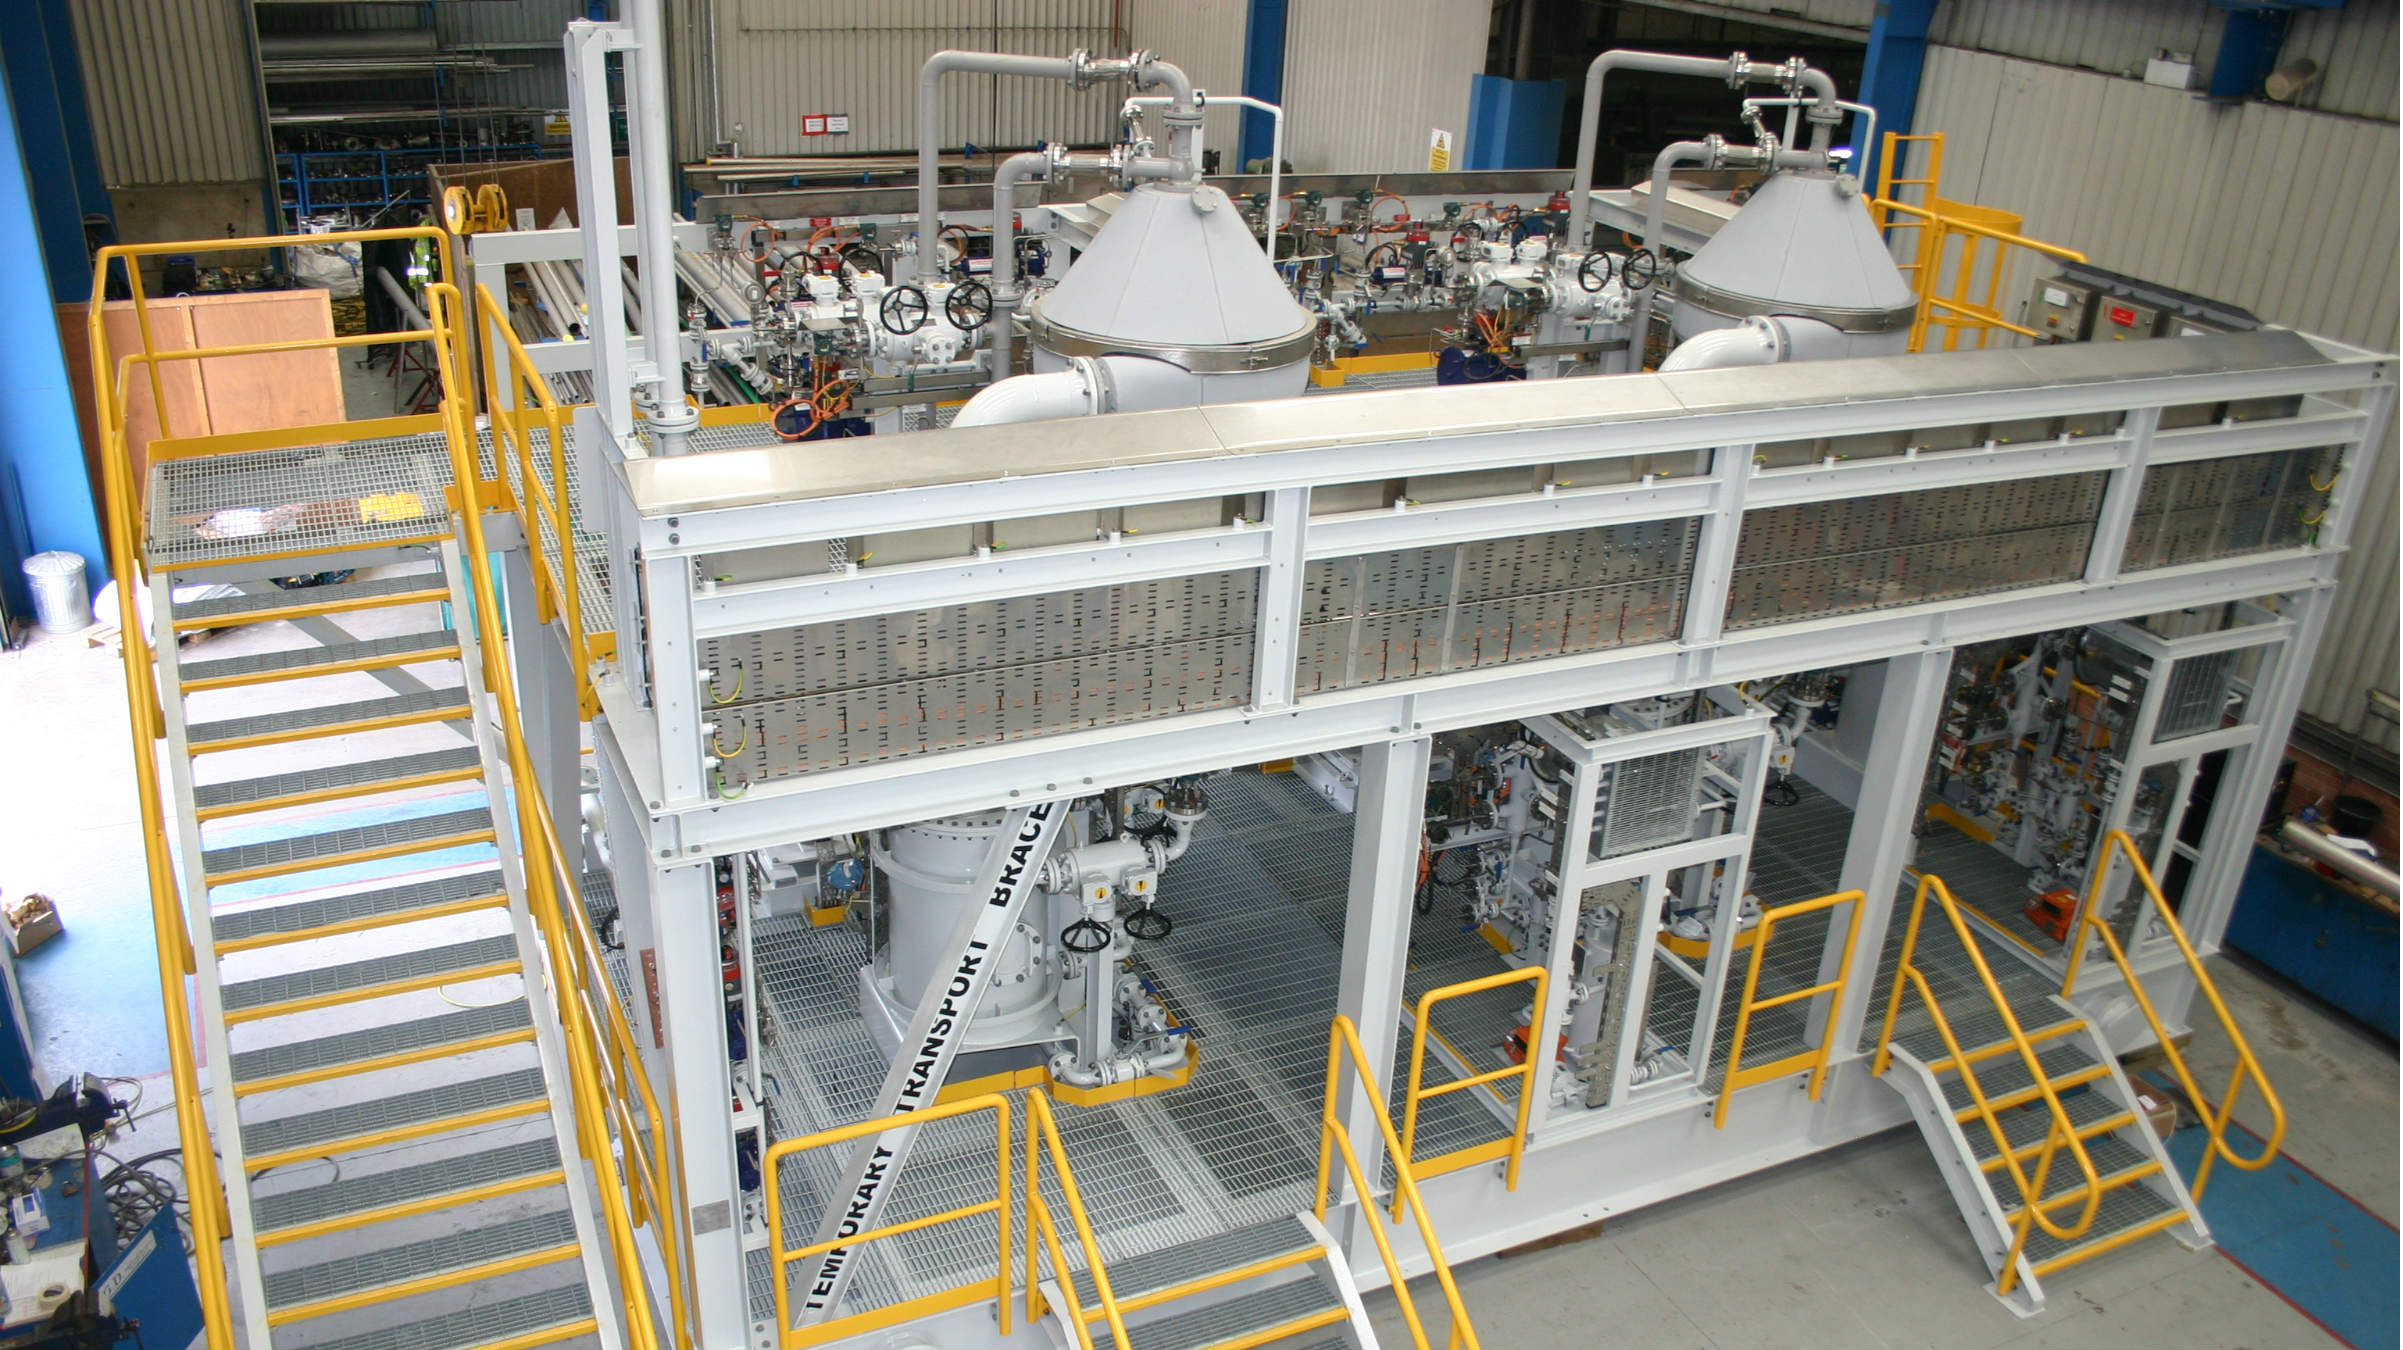 GEA has delivered two centrifuges for monoethylene glycol (MEG) purification at BP's West Nile Delta offshore natural gas field in Egypt.  (Photo: GEA)